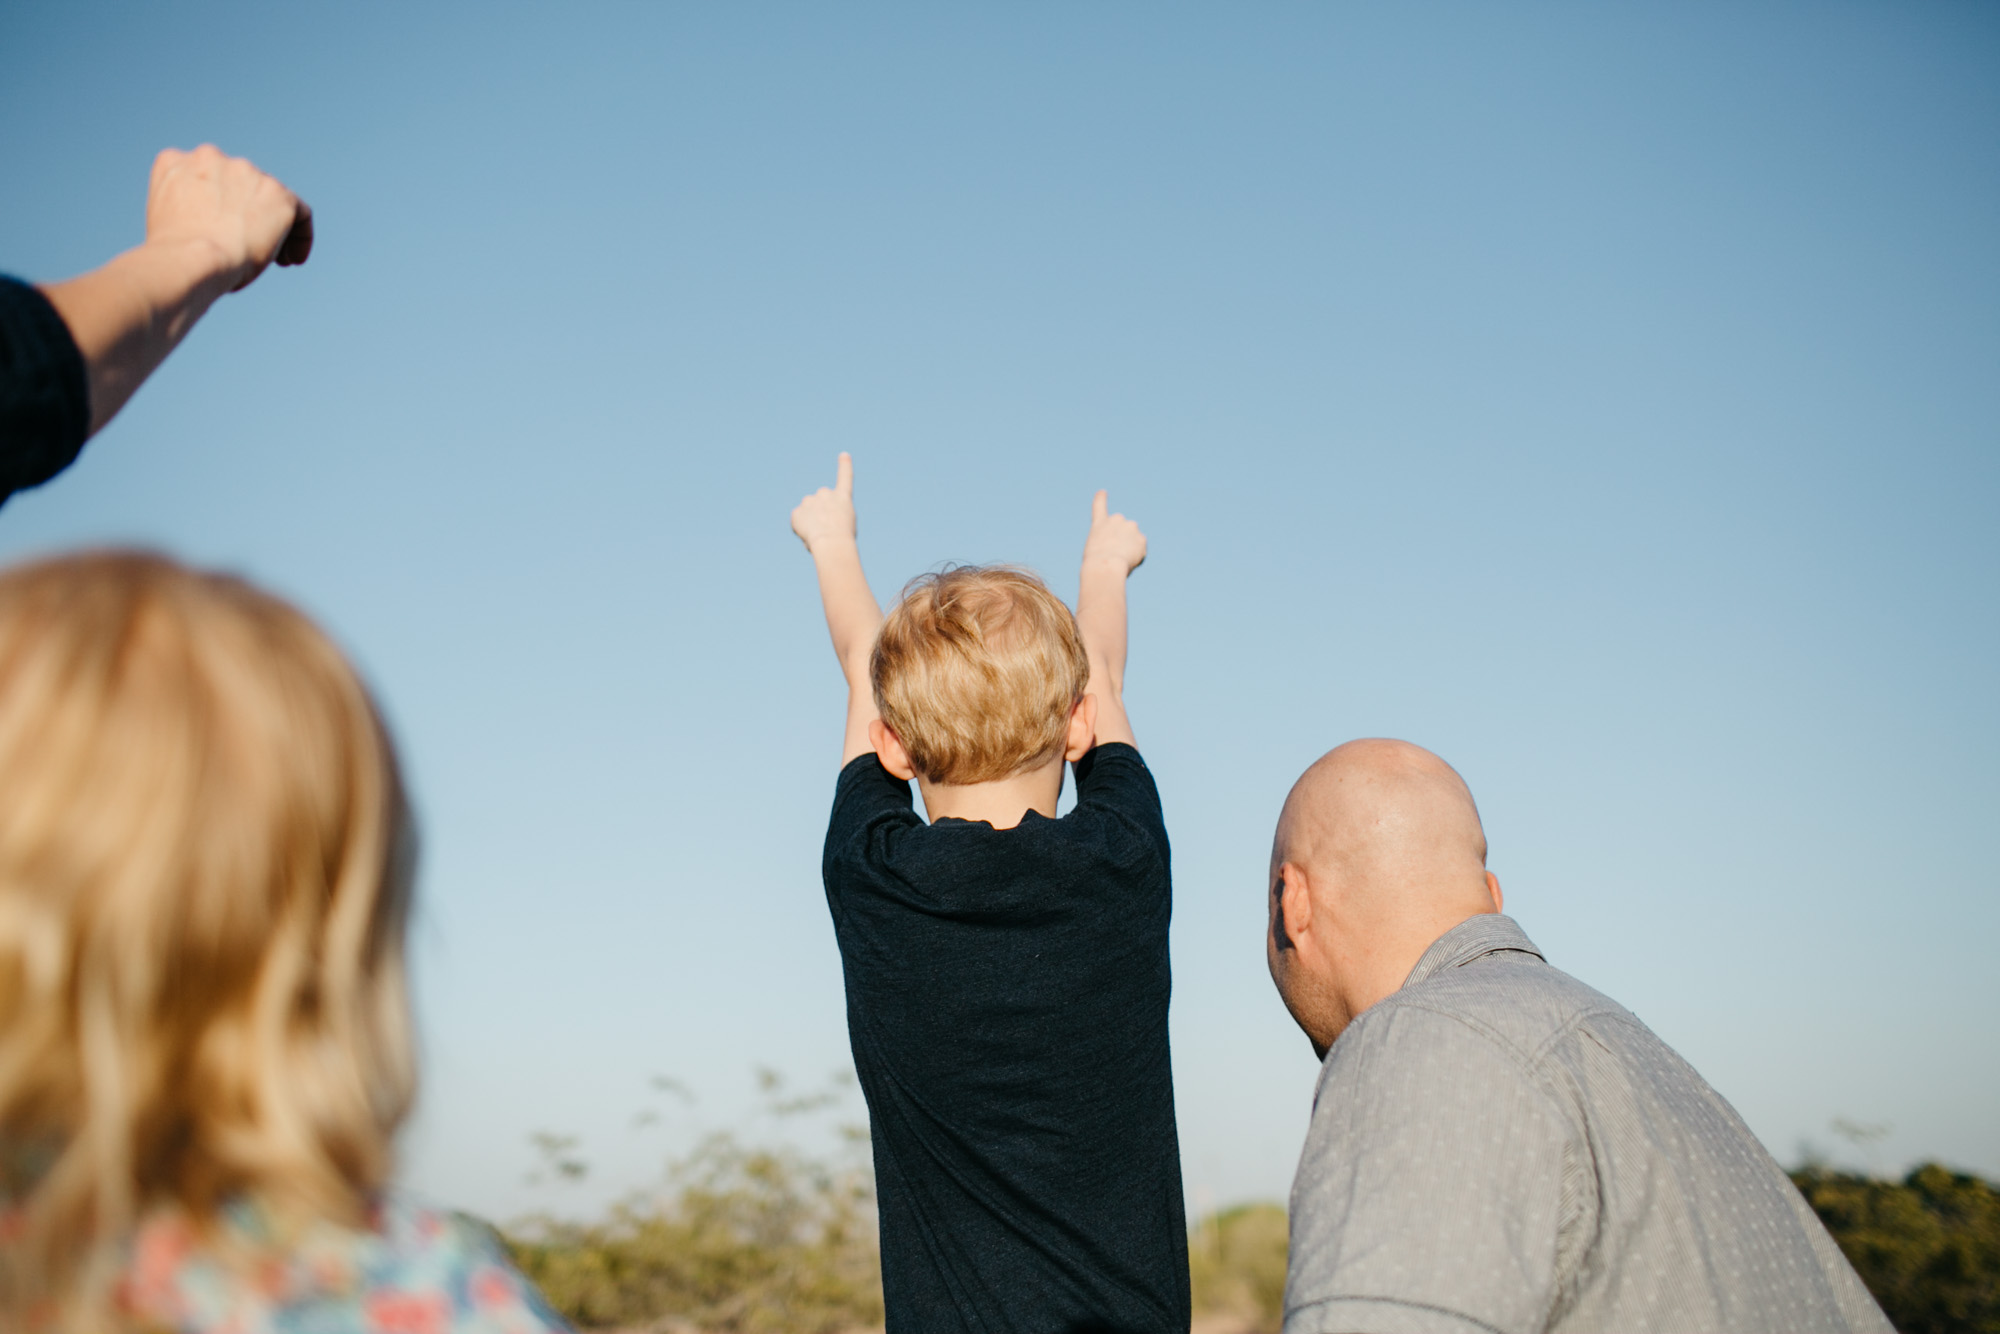 scottsdale-family-lifestyle-photographer-22.jpg